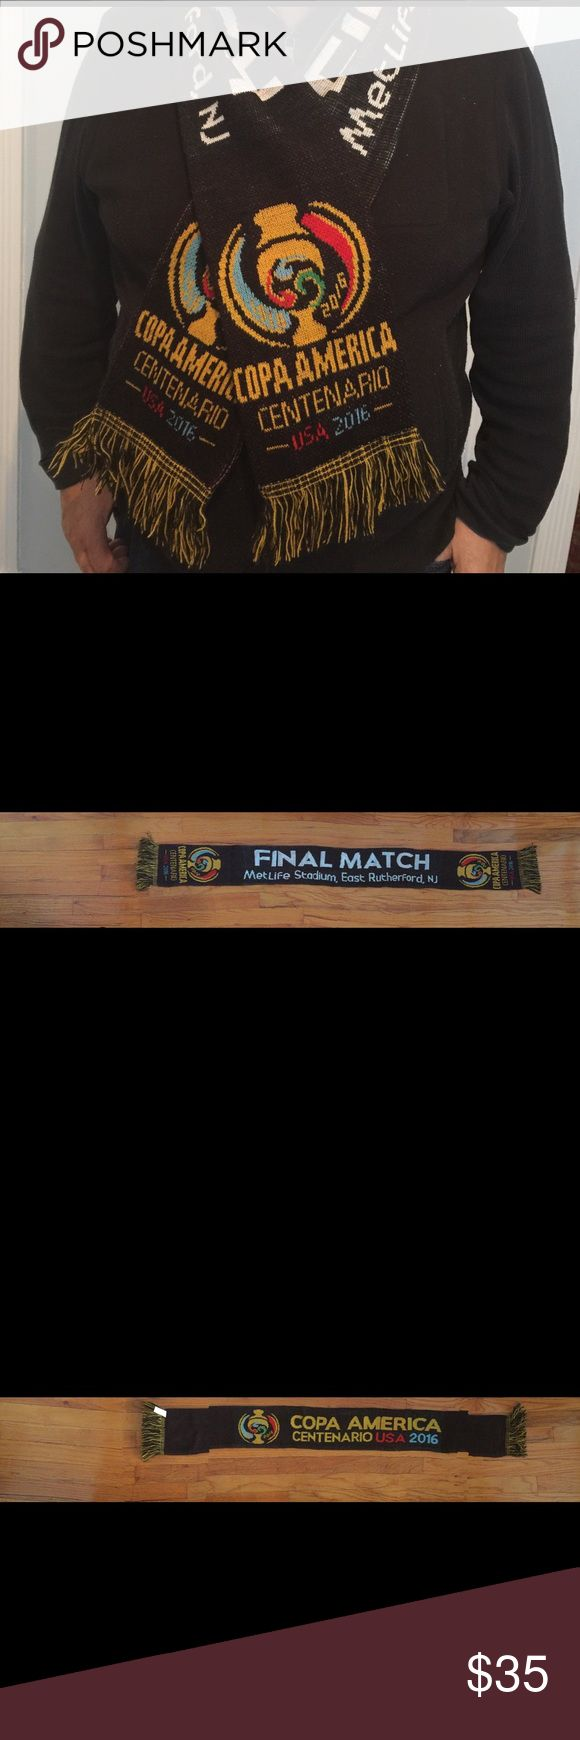 Copa América USA 2016 Final Match scarf Final match scarf giveaway. Argentina vs Chile Accessories Scarves & Wraps